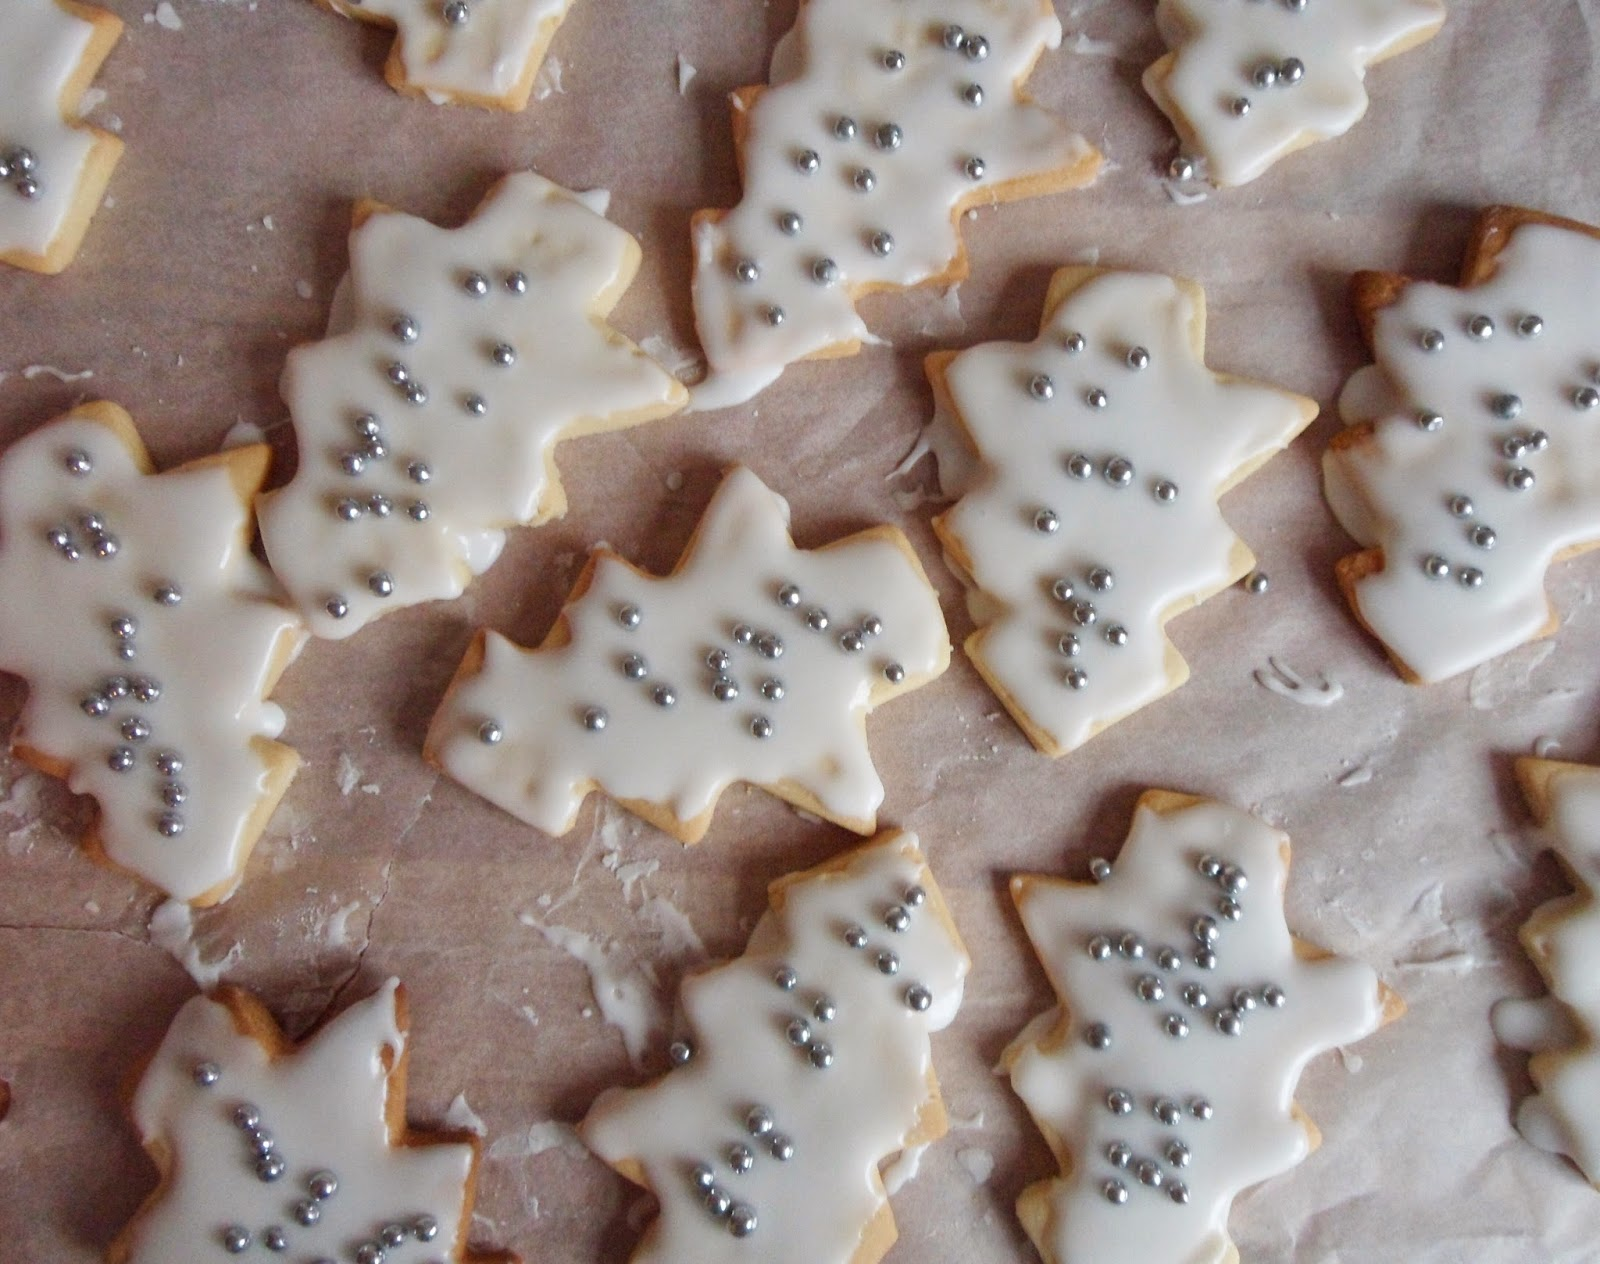 fbloggers, cooking, lifestyle, lifestylebloggers, lbloggers, christmas, christmascookies, biscuits, baking